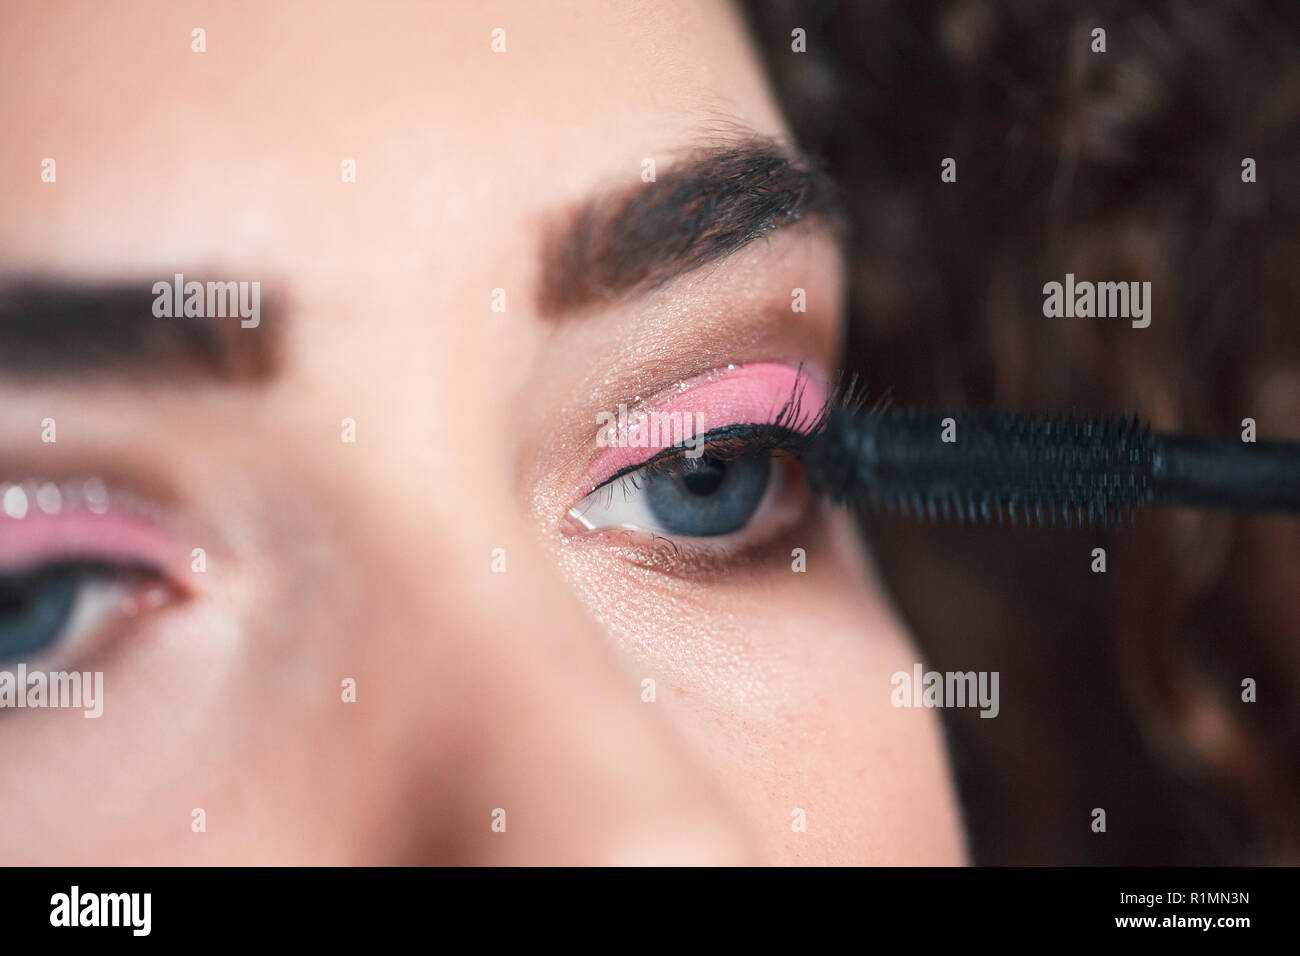 Closeup Of Makeup Artist Applying Smokey Eyes Makeup Beauty And